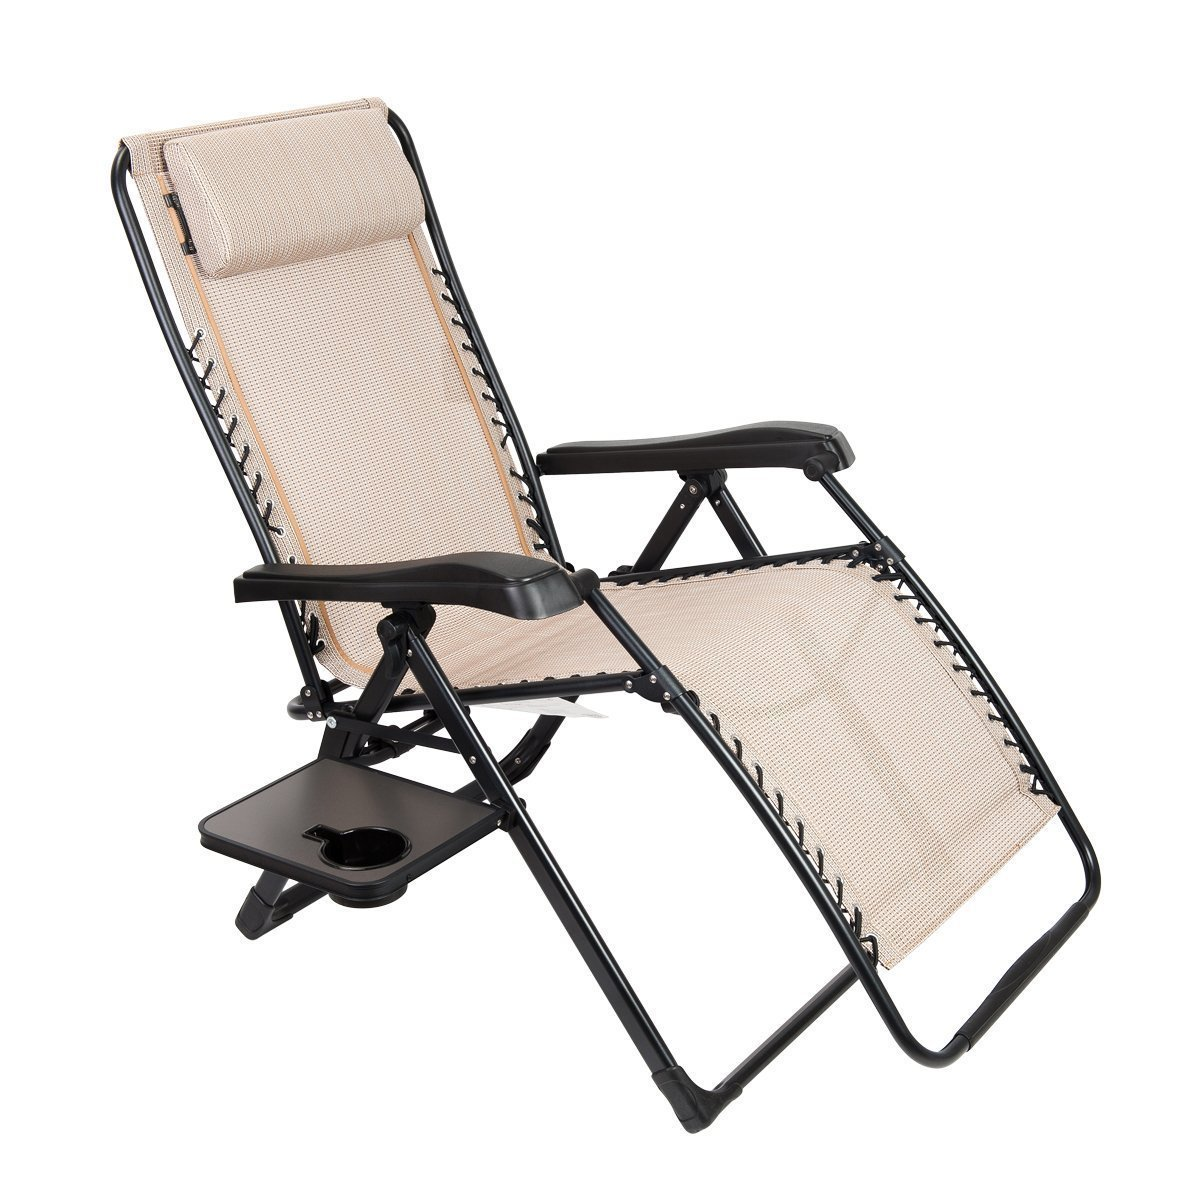 Beach lounge chair side view - Timber Ridge Oversized Xl Zero Gravity Adjustable Recliner Lounge Patio Chair With Side Table Supports 350lbs